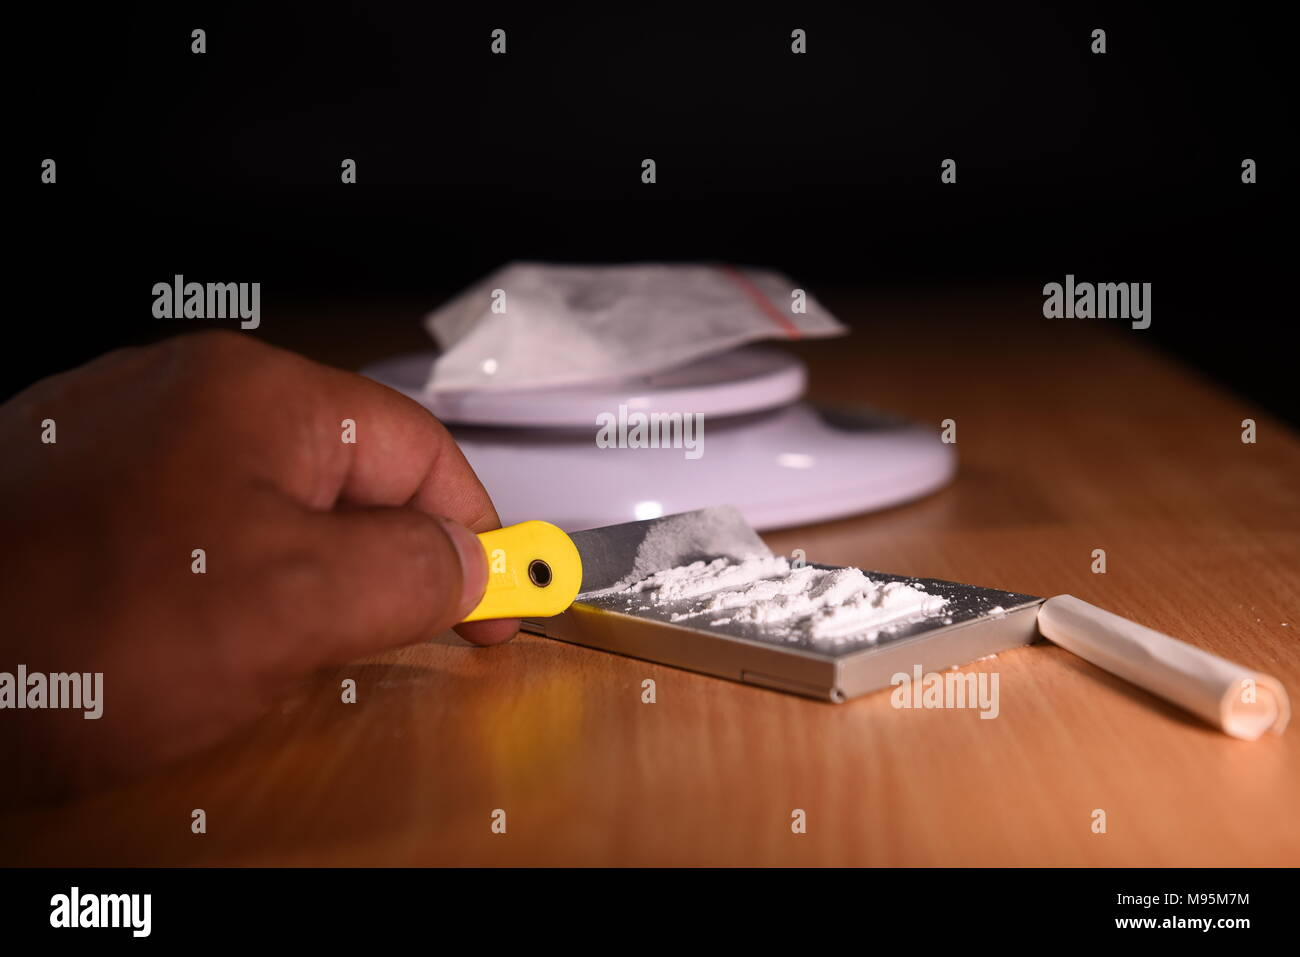 how to become a cocaine dealer